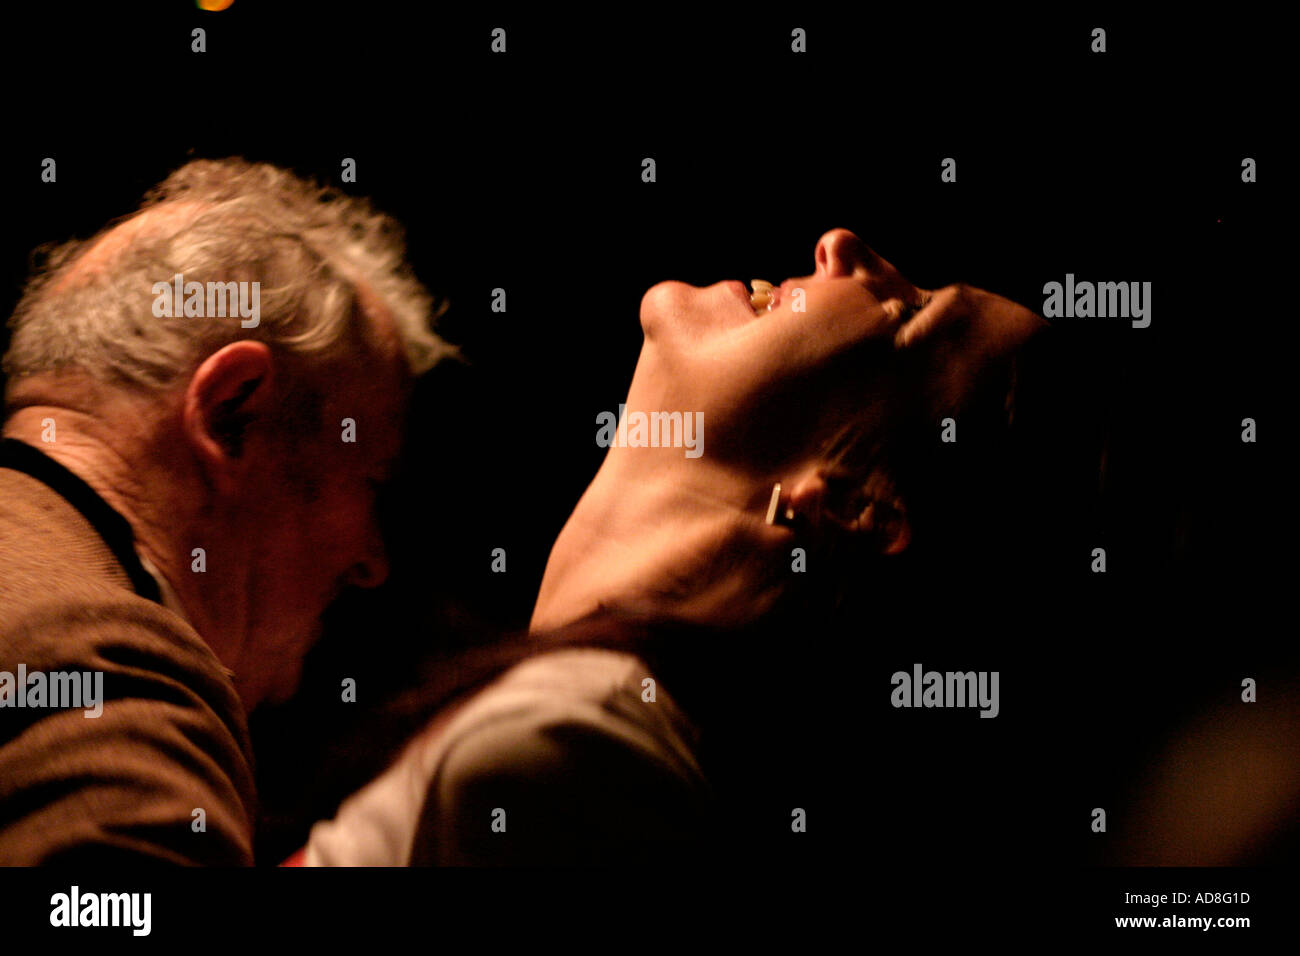 A climatic moment in an impromptu celtic dance An old man dancing with a younger woman - Stock Image